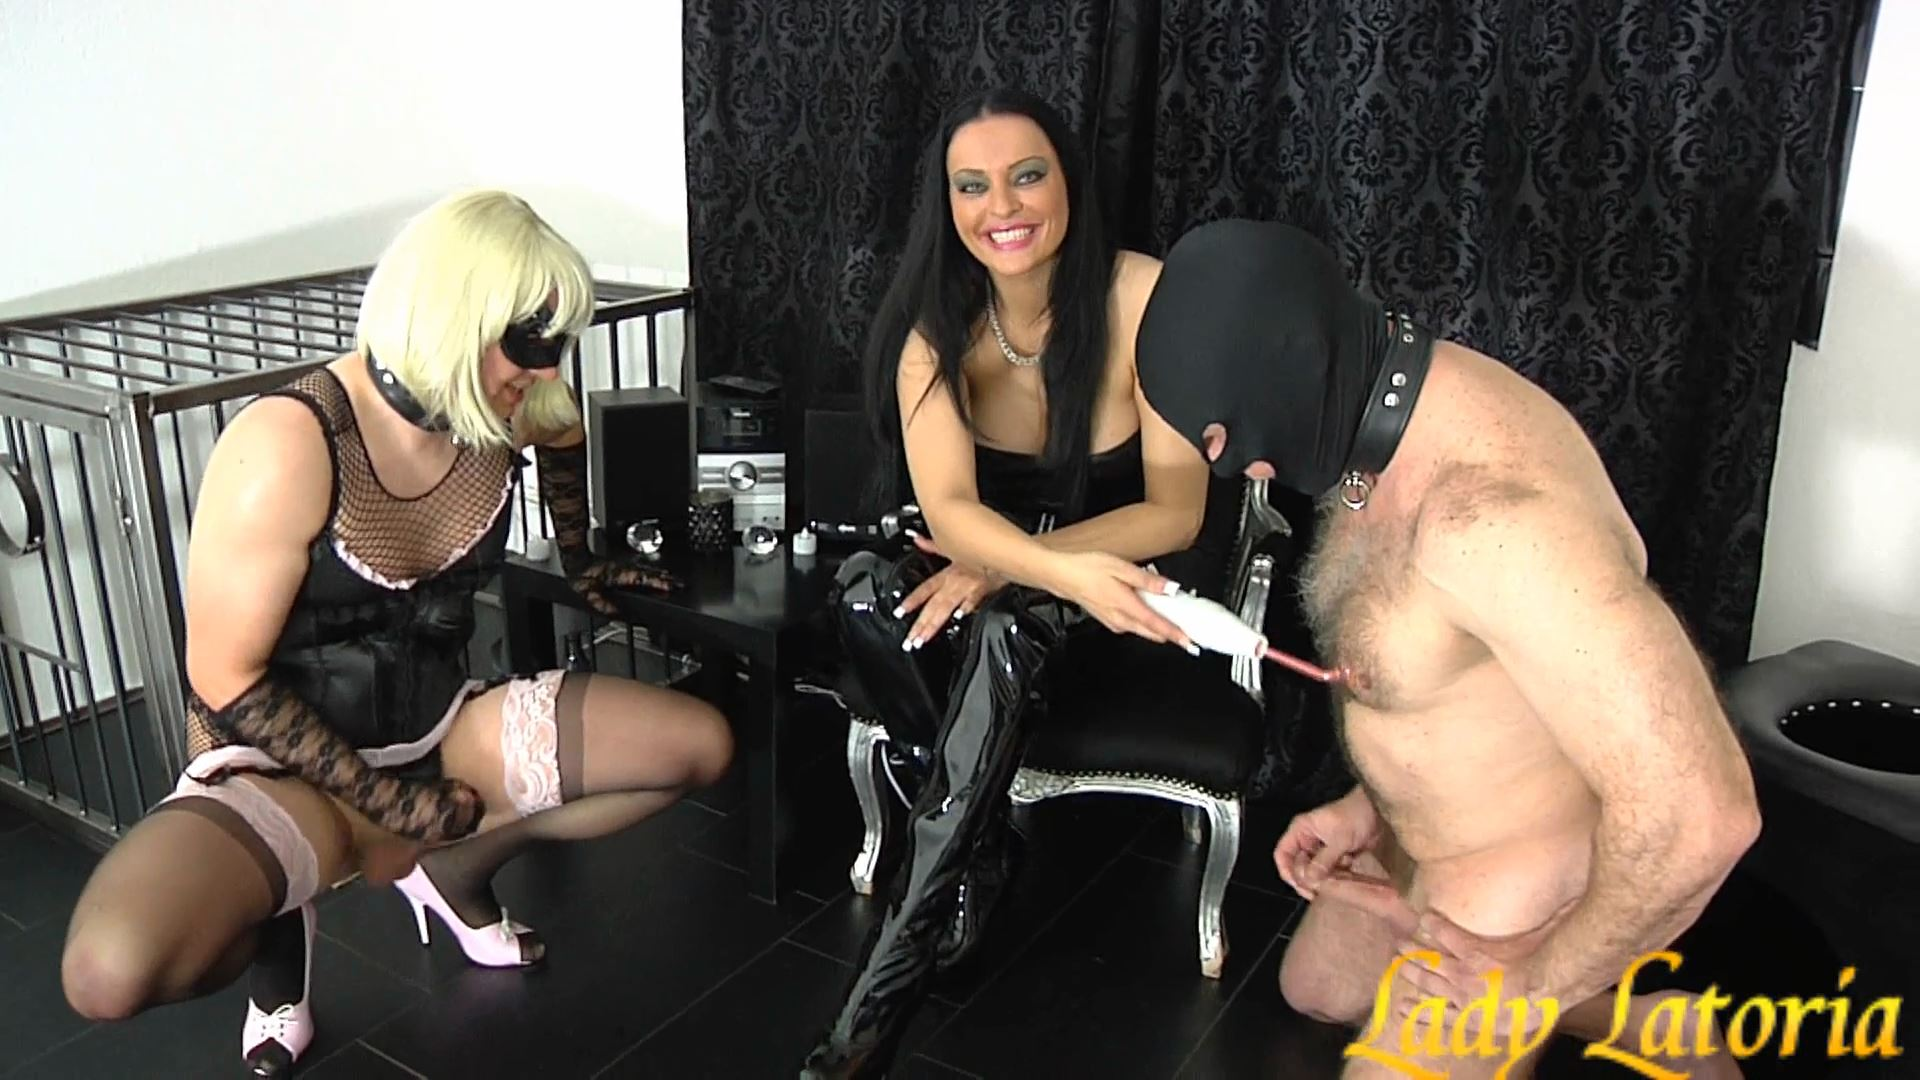 Mistress Lady Latoria In Scene: Wank contest 2 - CLIPS4SALE / LADY LATORIAS WORLD / HERRIN-LATORIA - FULL HD/1080p/MP4